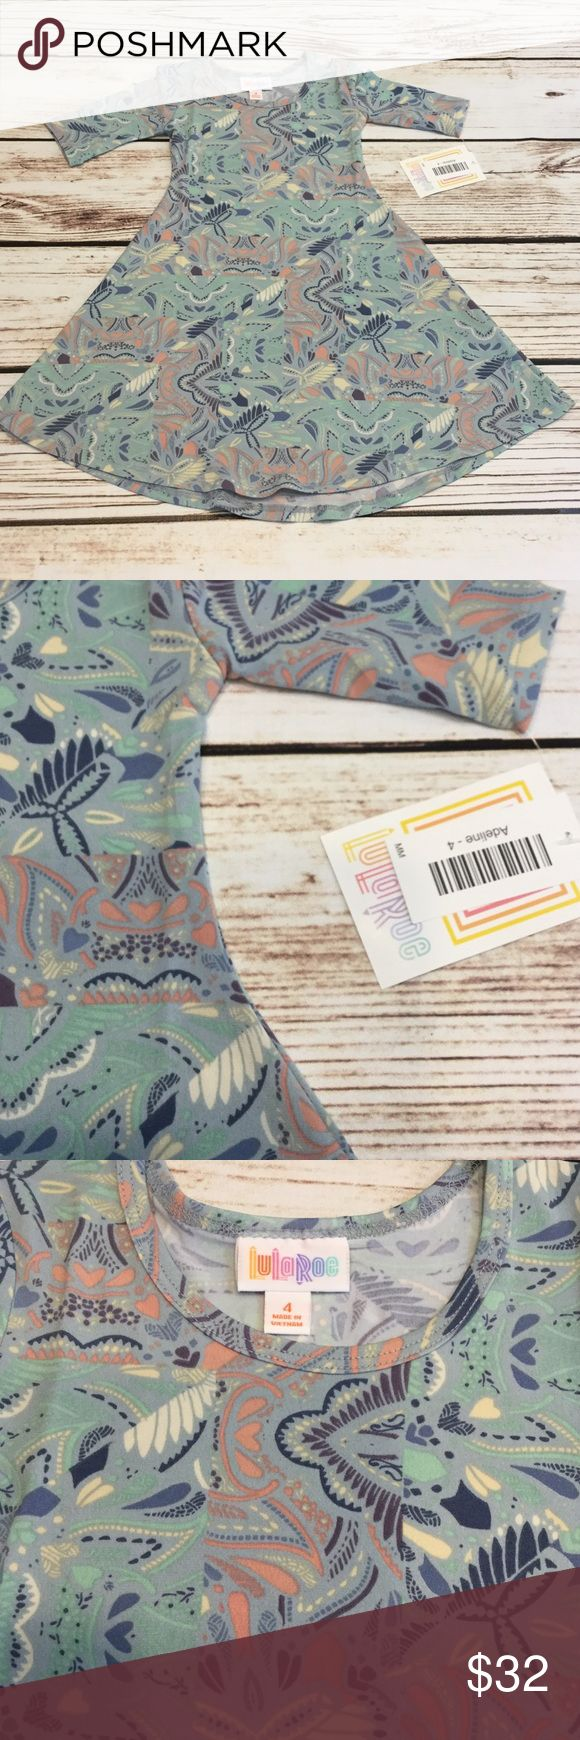 👒Girls Adeline in a blue/gray tone NWT size 4! 🇺🇸Item is as pictured 🇺🇸See sizing chart for details.  🇺🇸No trades  🇺🇸FIRM on this item no offers accepted unless you bundle. 😉Thank you for the likes, shares and kindness! 😘 LuLaRoe Dresses Casual